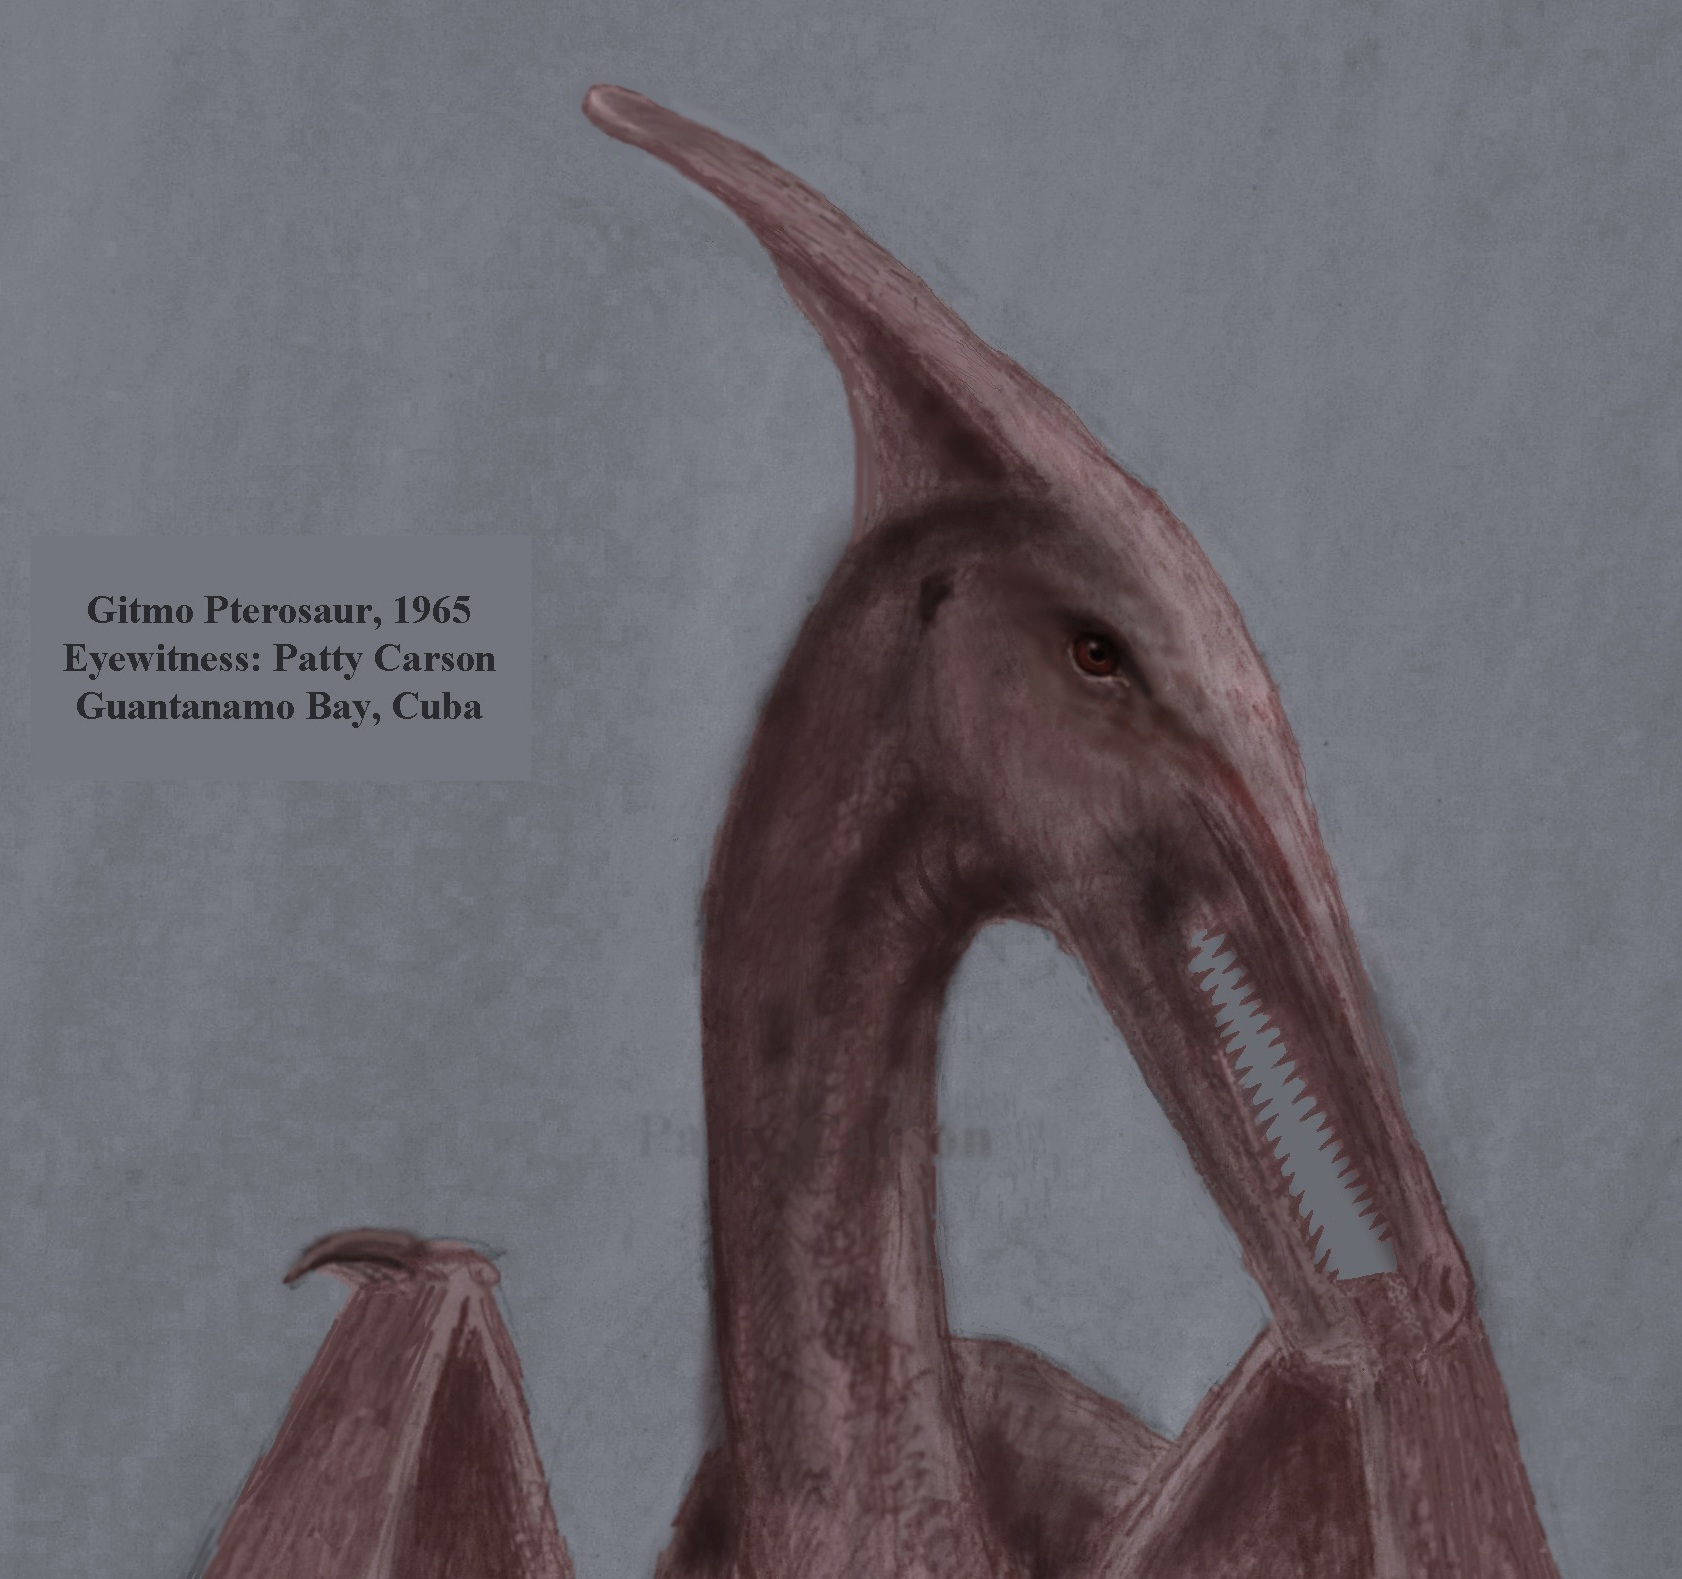 This ropen was seen by Patty Carson, who drew this sketch of the large pterosaur she encountered at Guantanamo Bay, Cuba